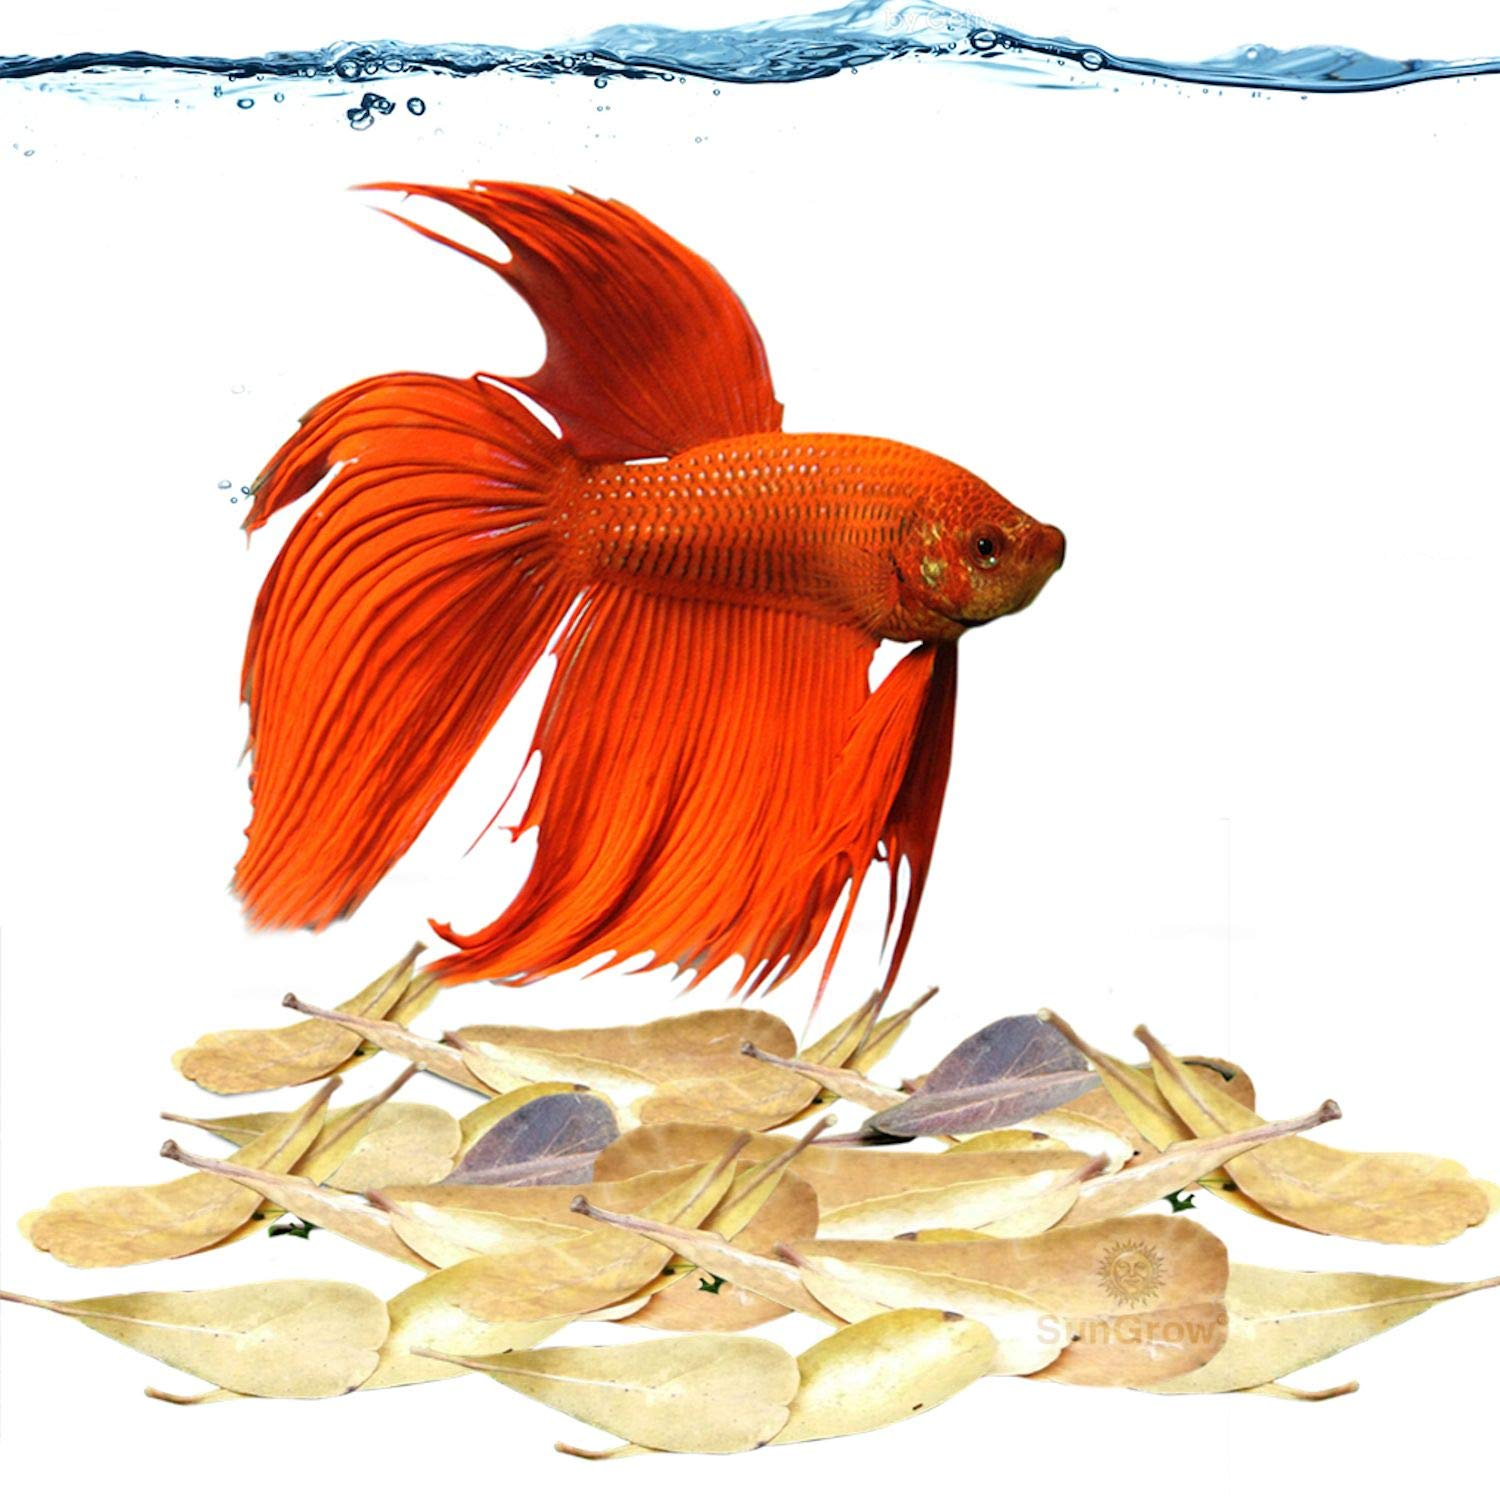 """SunGrow Miracle Fin Rot Mini Catappa Leaves, Betta Medicine & Water Supplement, Keep Bettas Healthy and Happy, Contains Beneficial Compounds, 2"""" (5cm) Long Indian Almond Leaves, 50 Leaves"""